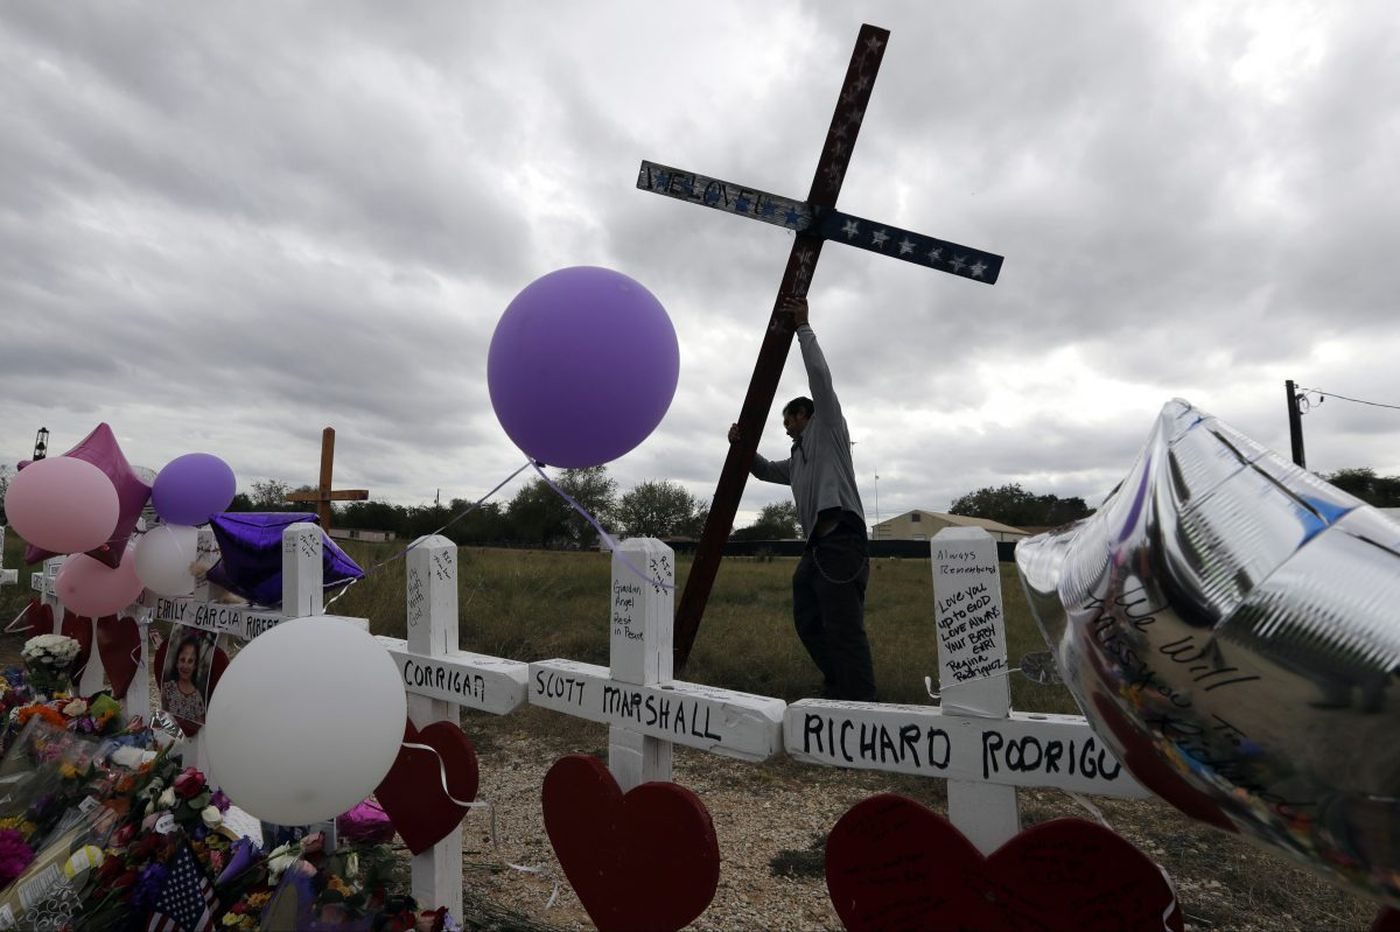 After massacres, houses of worship prepare for the worst